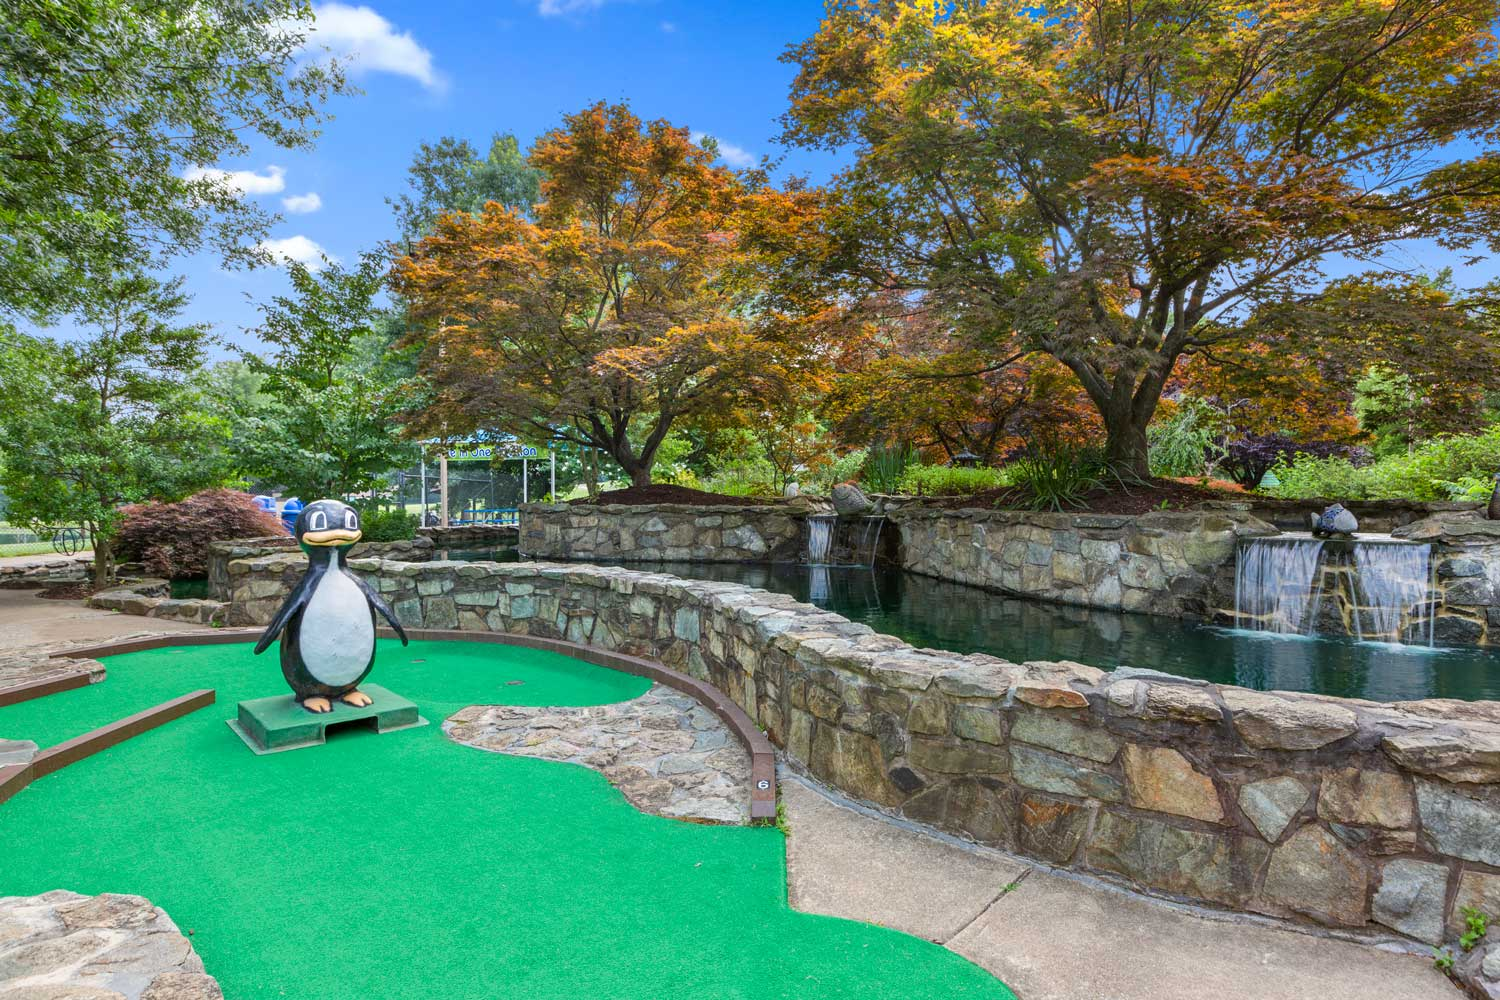 Miniature golf course 5 minutes from Governor Square Apartments in Gaithersburg, MD